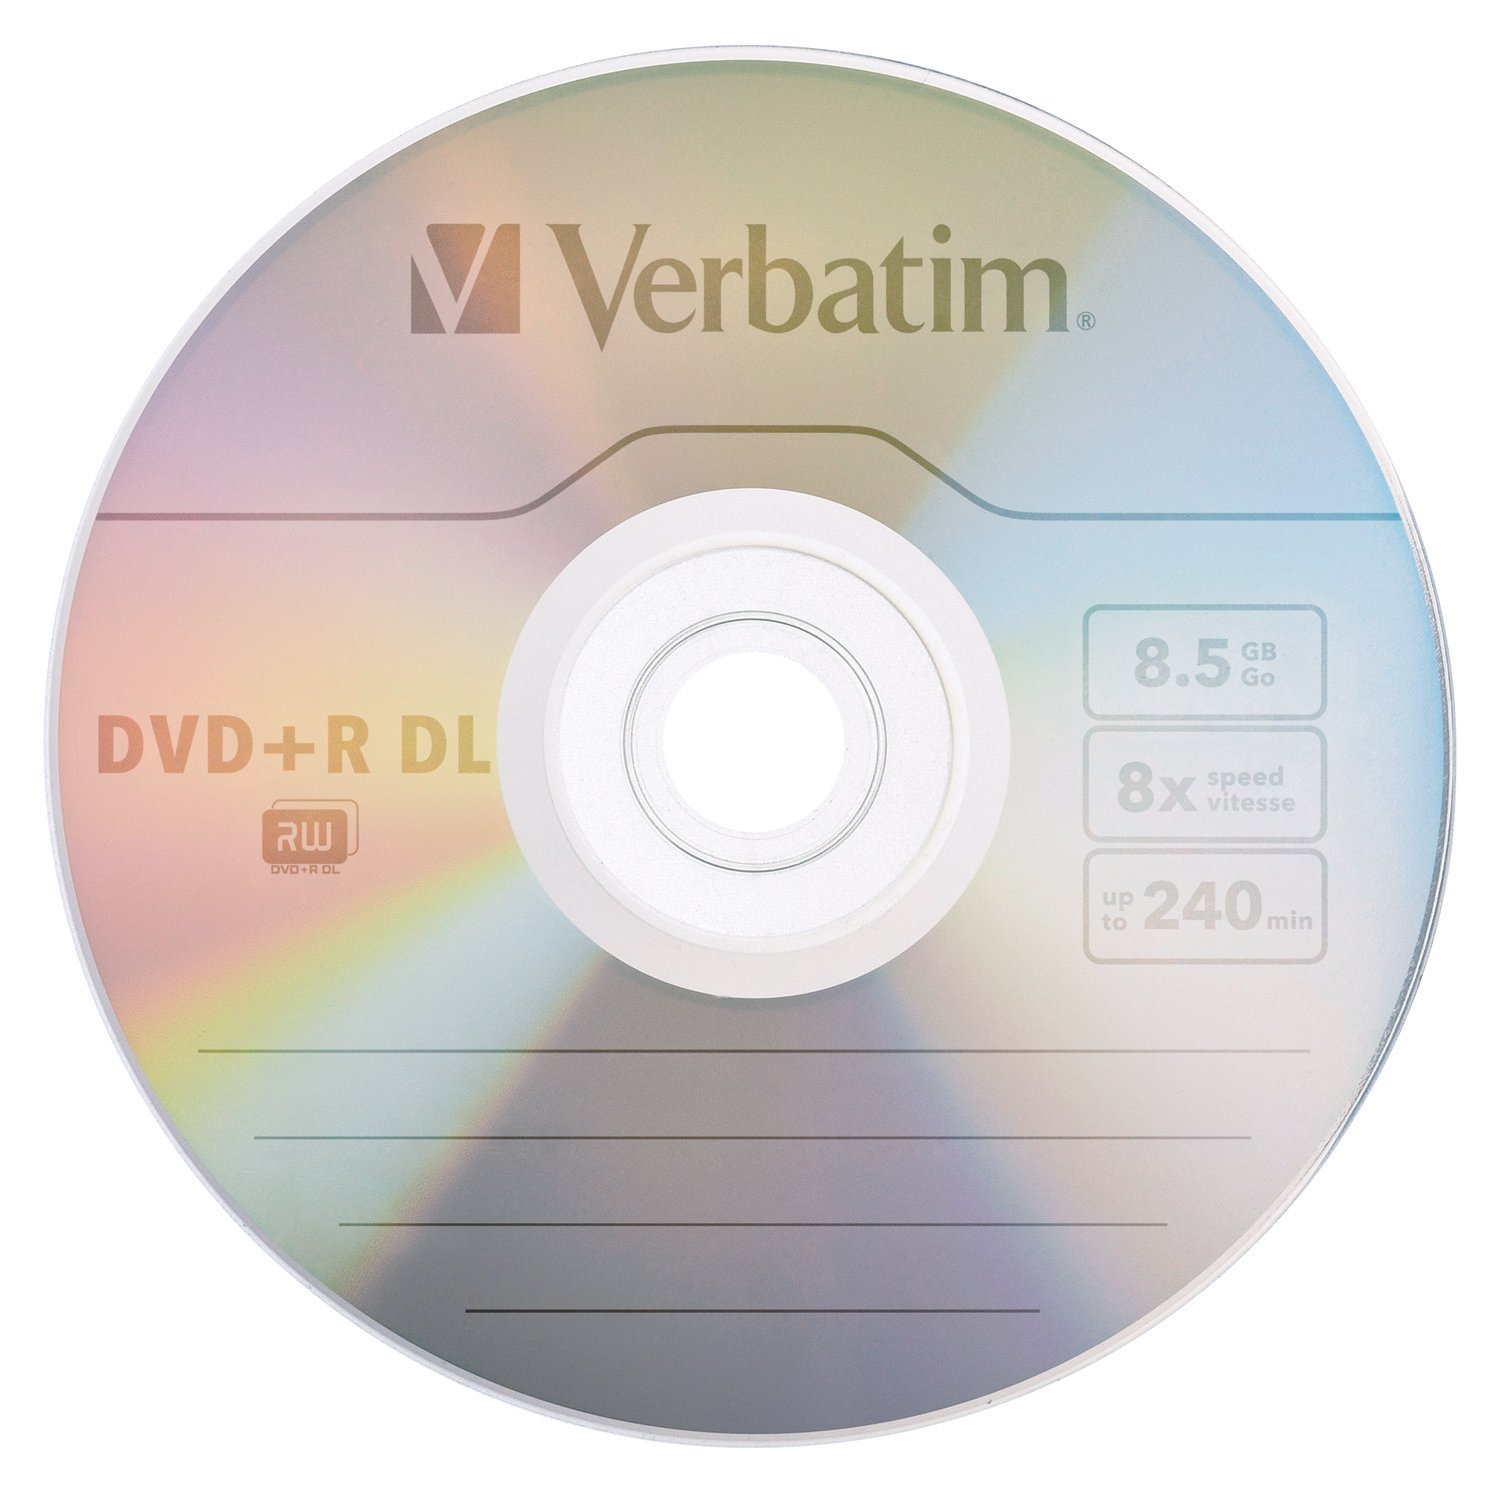 Verbatim dvd rw 4 7gb 4x with branded surface 30pk spindle 4 7gb - Amazon Com Verbatim Dvd R Dl Azo 8 5gb 8x 10x Branded Double Layer Recordable Disc 30 Disc Spindle 96542 Home Audio Theater